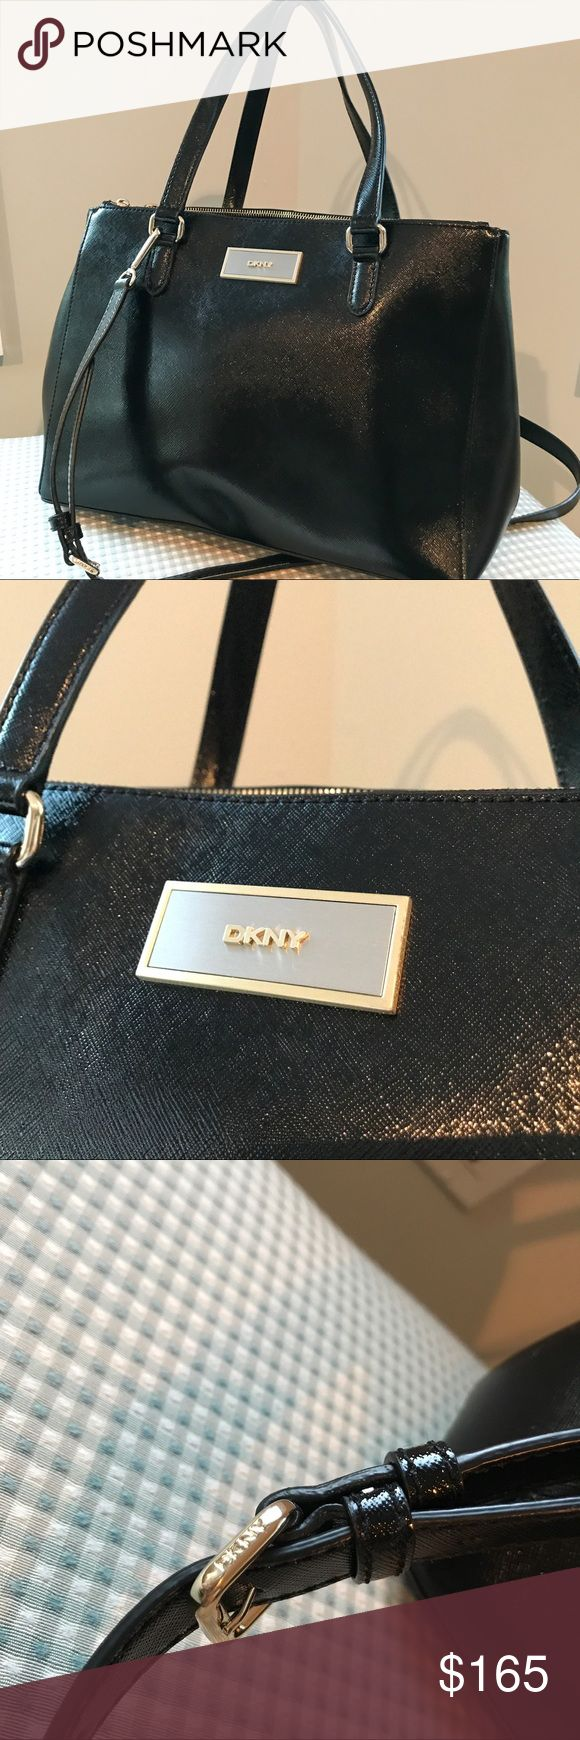 DKNY Leather Tote‼️ Brand new bag! No flaws scratches or use on this awesome tote.. this bag is a shiney leather with gold accents and has two zipper parts and a button middle with a long strap can be worn as a cross body DKNY Bags